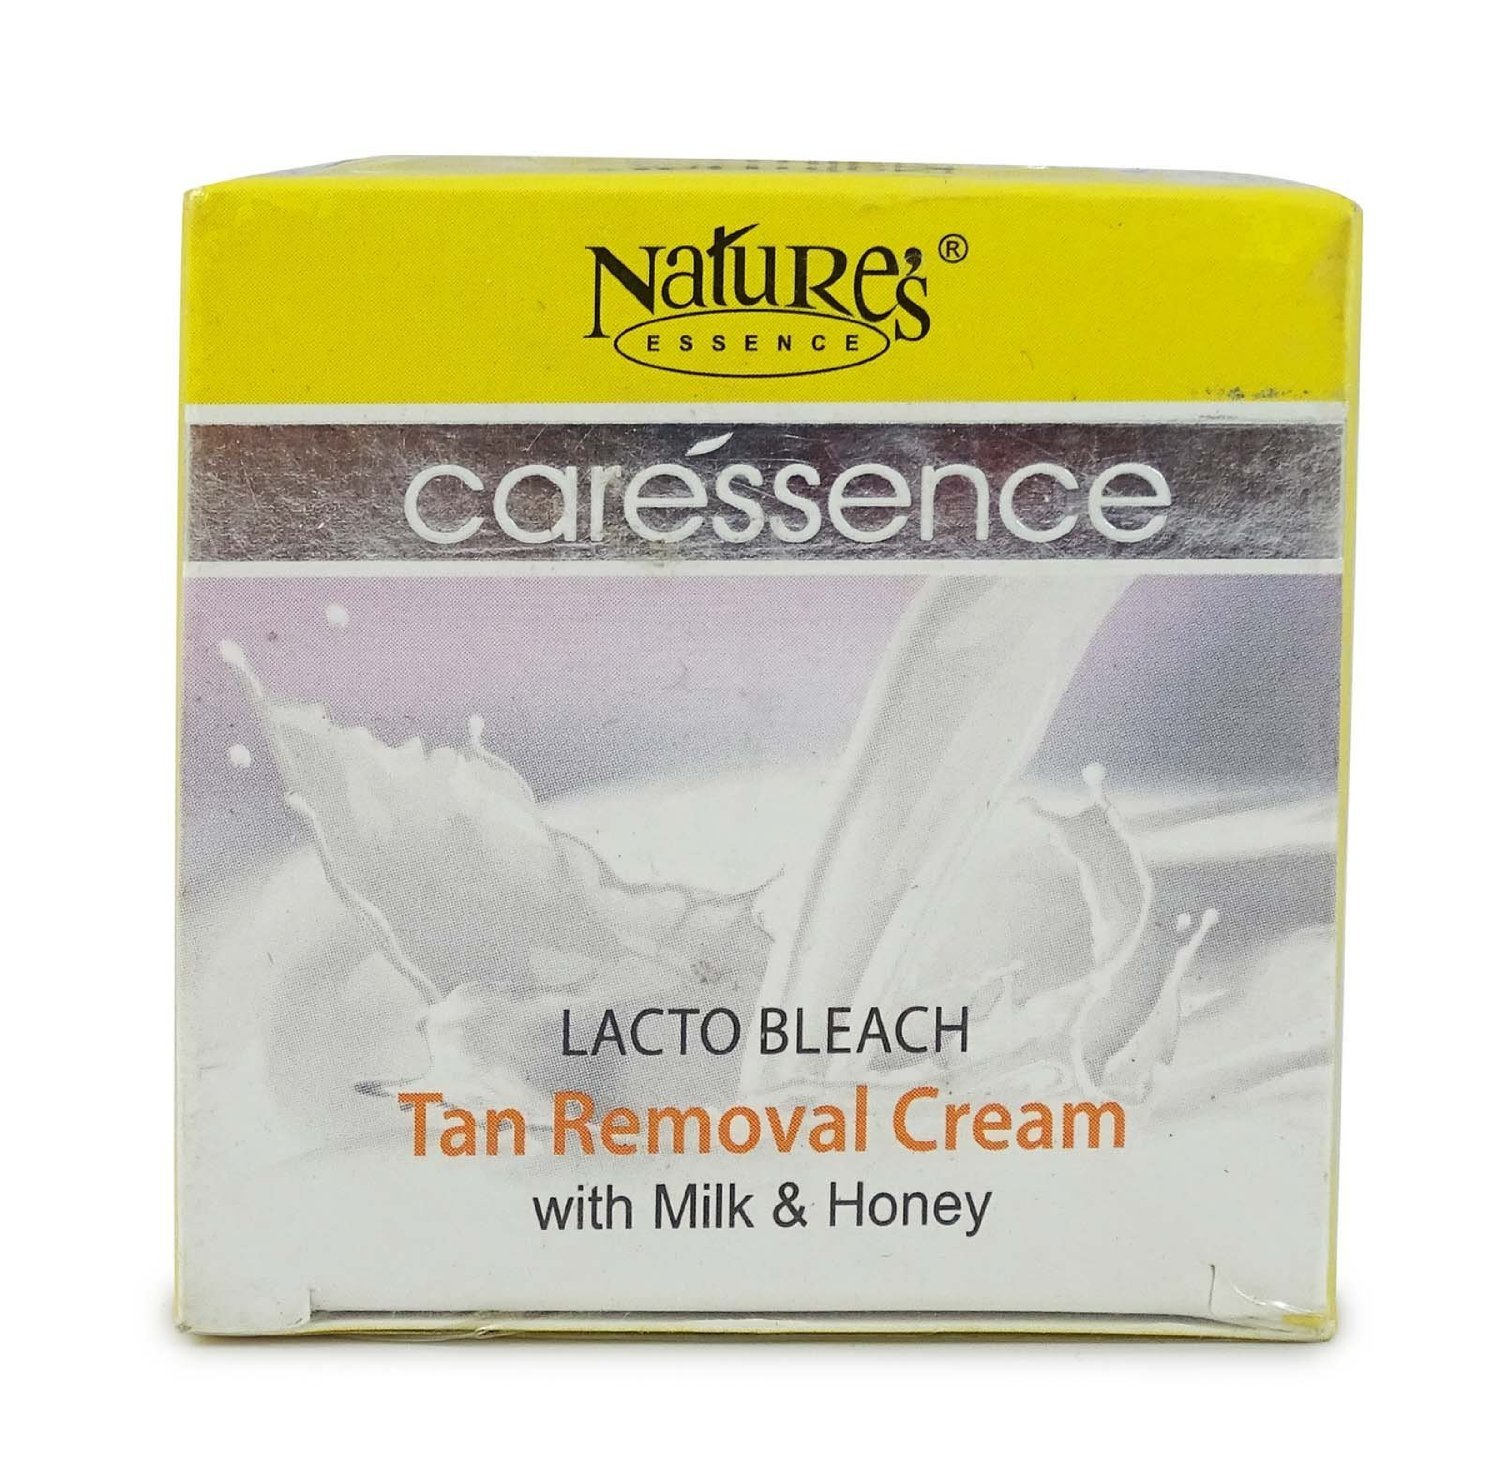 Nature's Essence Lacto Bleach Tan Removal Cream 100 gms